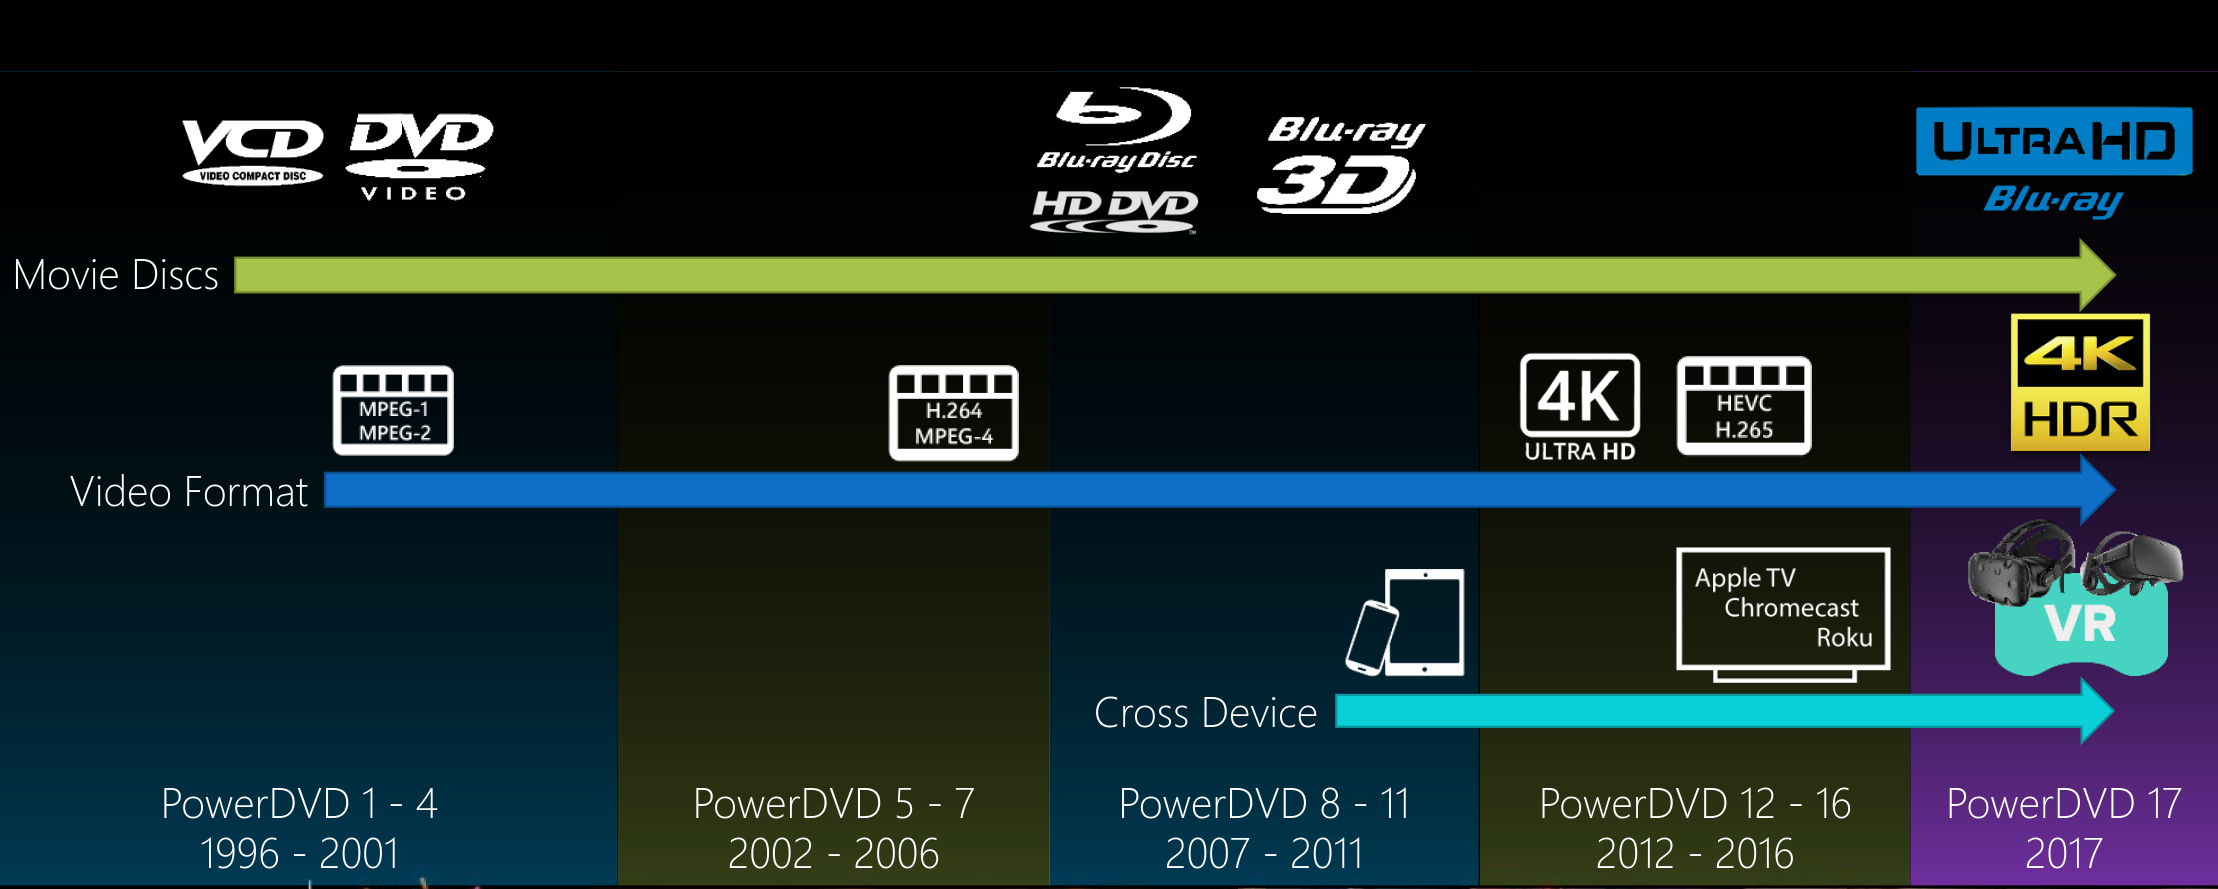 CyberLink Launches PowerDVD 17 with UHD Blu-ray and VR HMD